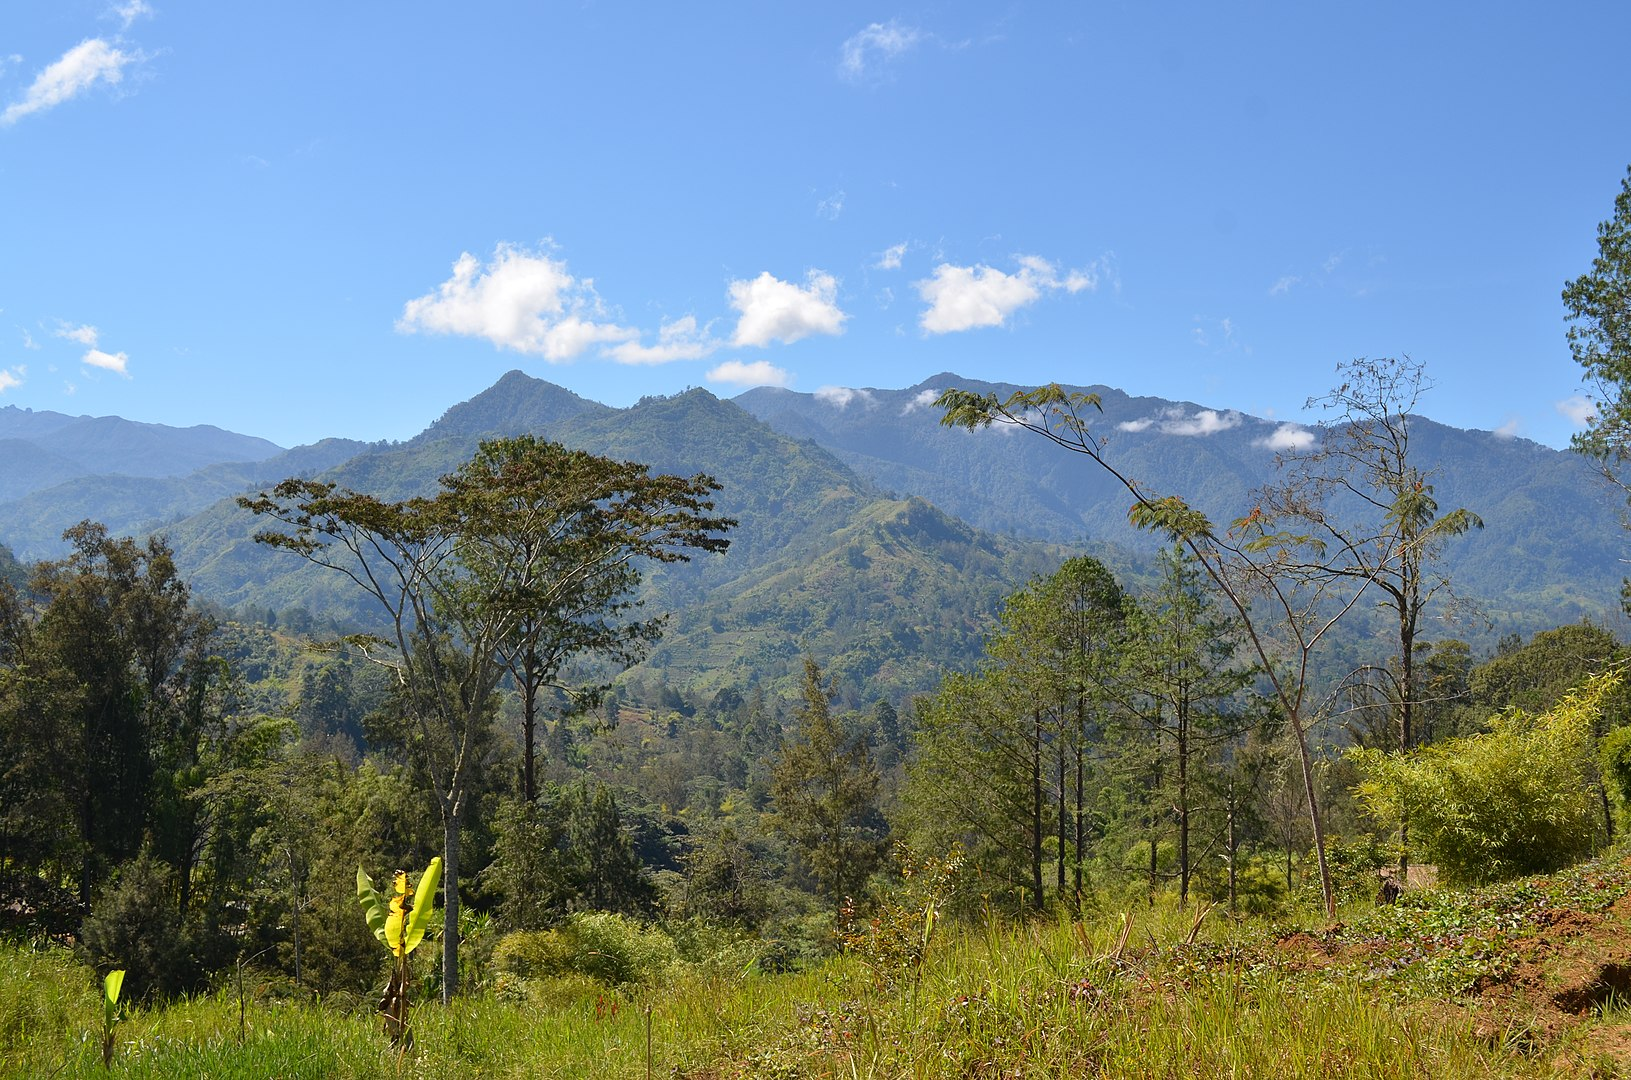 The West Papuan Highlands, where Trish first experienced aviation (By eGuide Travel - Papua New Guinea, CC BY 2.0, https://commons.wikimedia.org/w/index.php?curid=22969919)